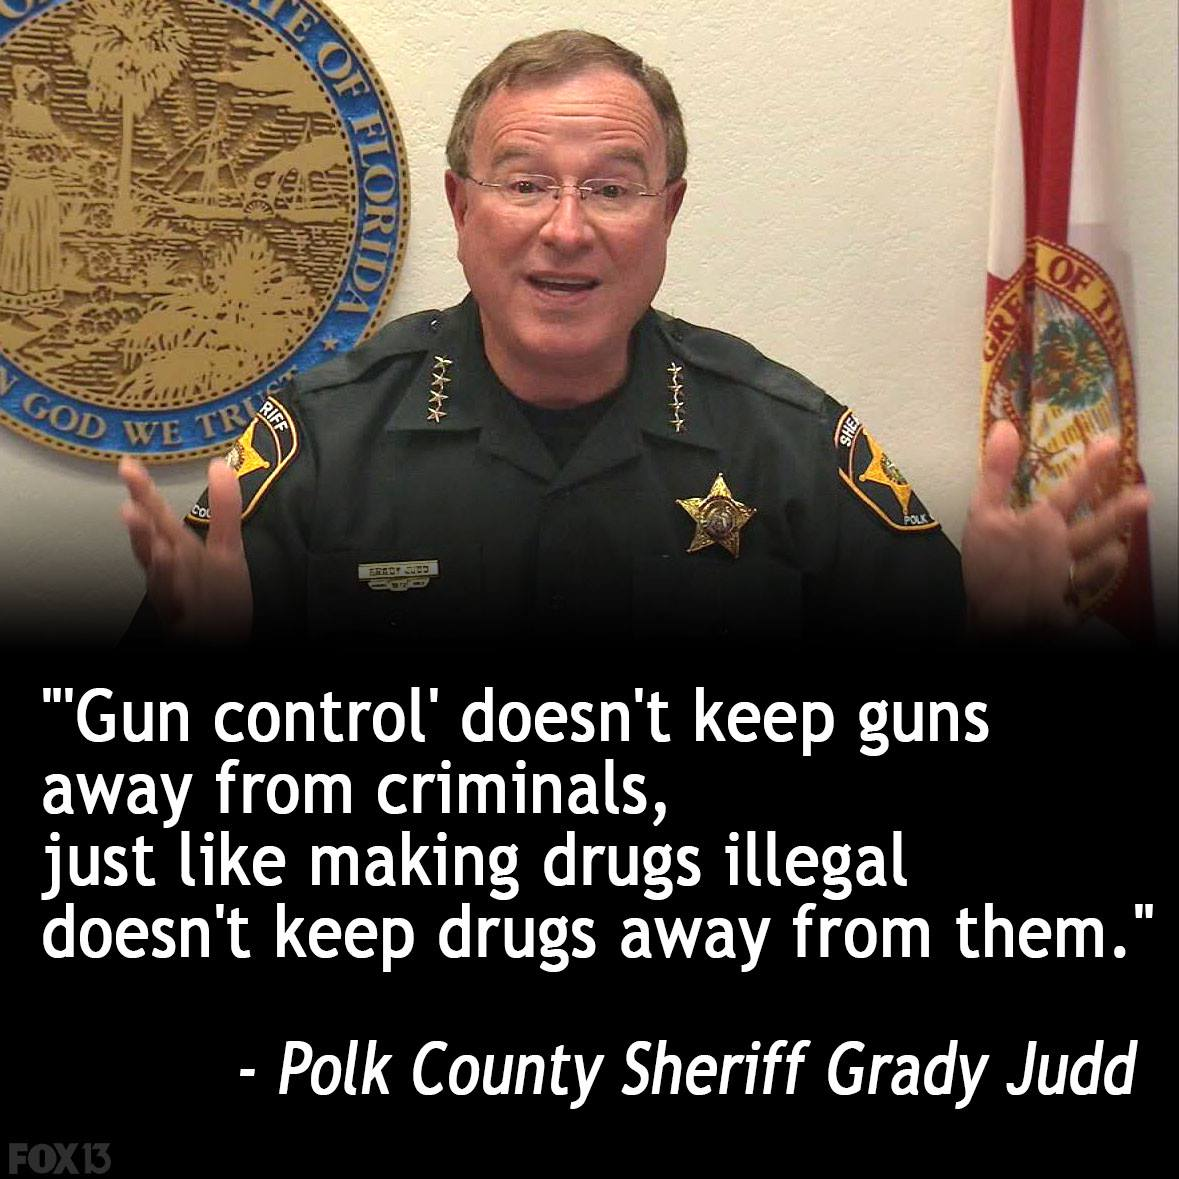 Sheriff Grady Judd Famous Quotes: Gun Control Doesn't Keep Guns Away From Criminals, Just